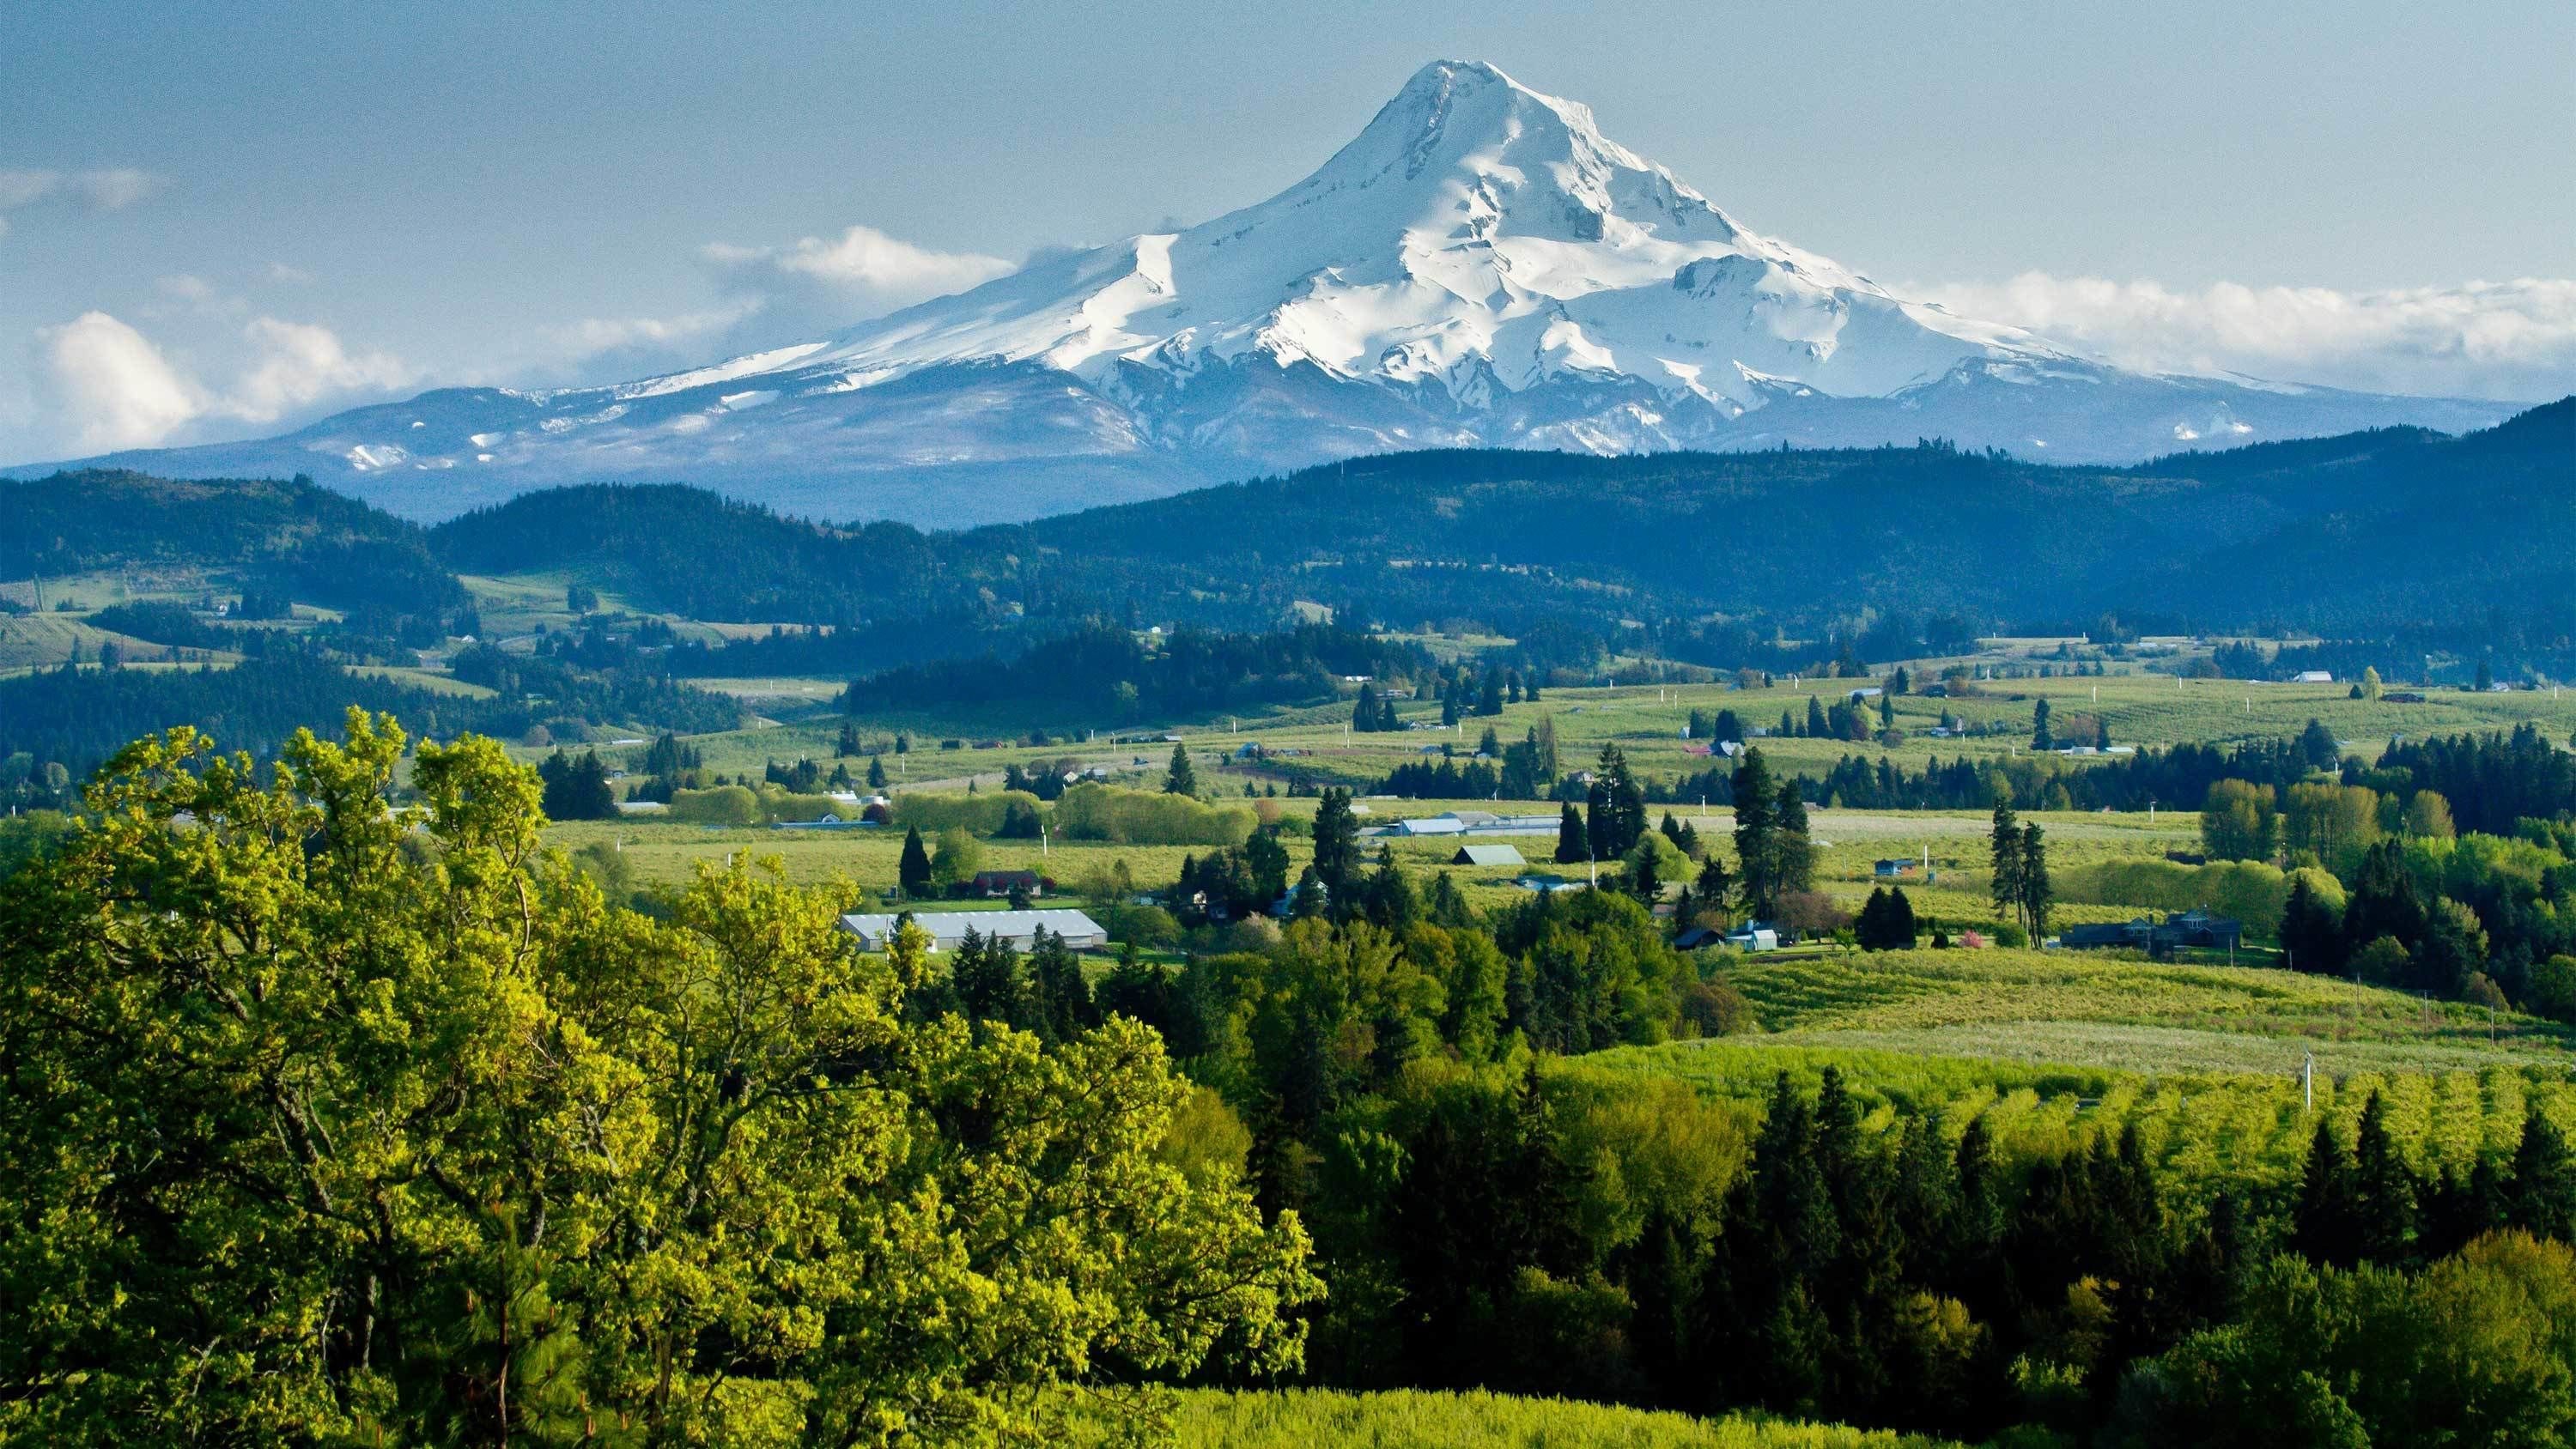 Panoramic view of Mt. Hood